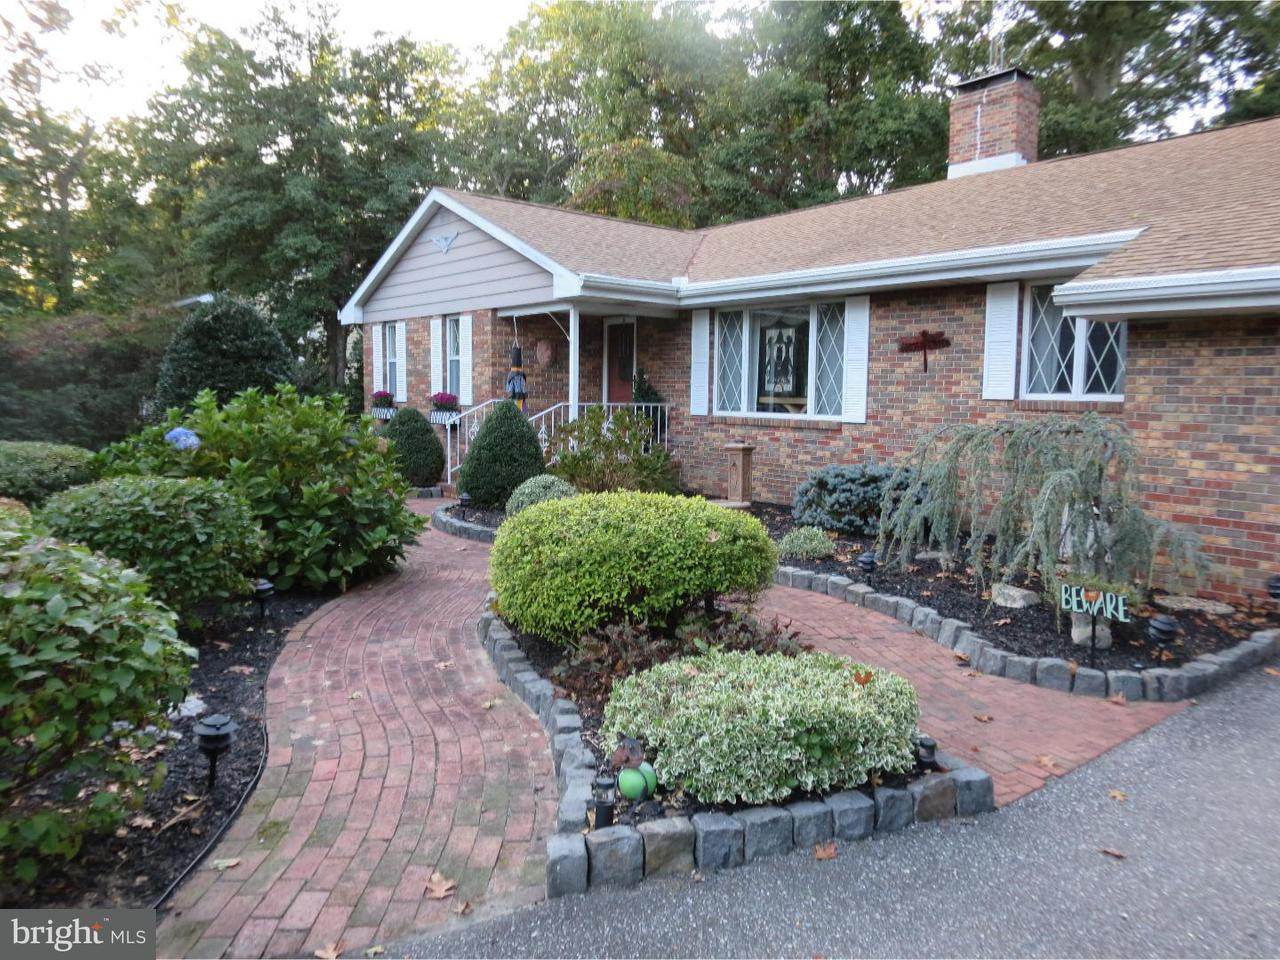 Single Family Home for Sale at 10 MALAGA Drive Upper Deerfield Township, New Jersey 08302 United States